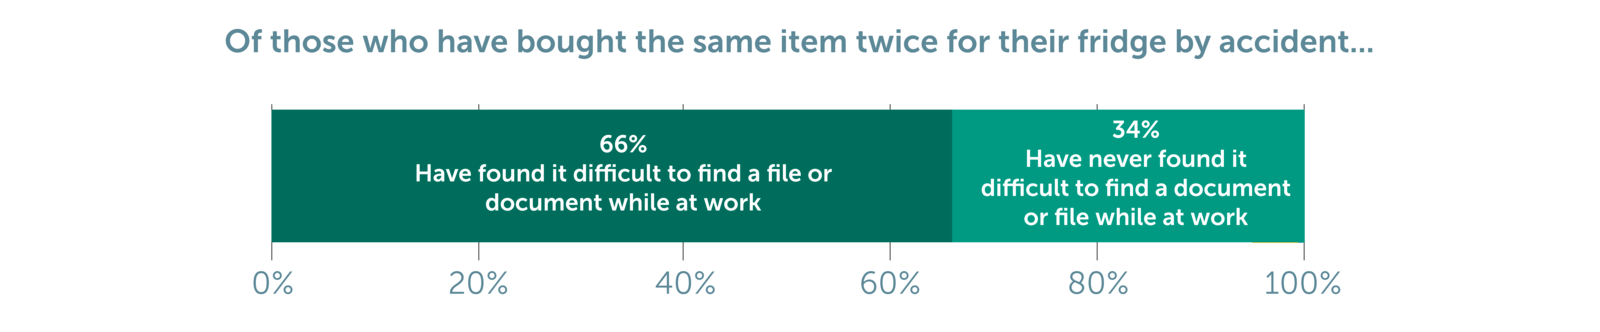 Figure 6: Have you ever bought the same food item twice because you hadn't realized it was already in your fridge and found it difficult to locate a document or file while at work (Chart 24)